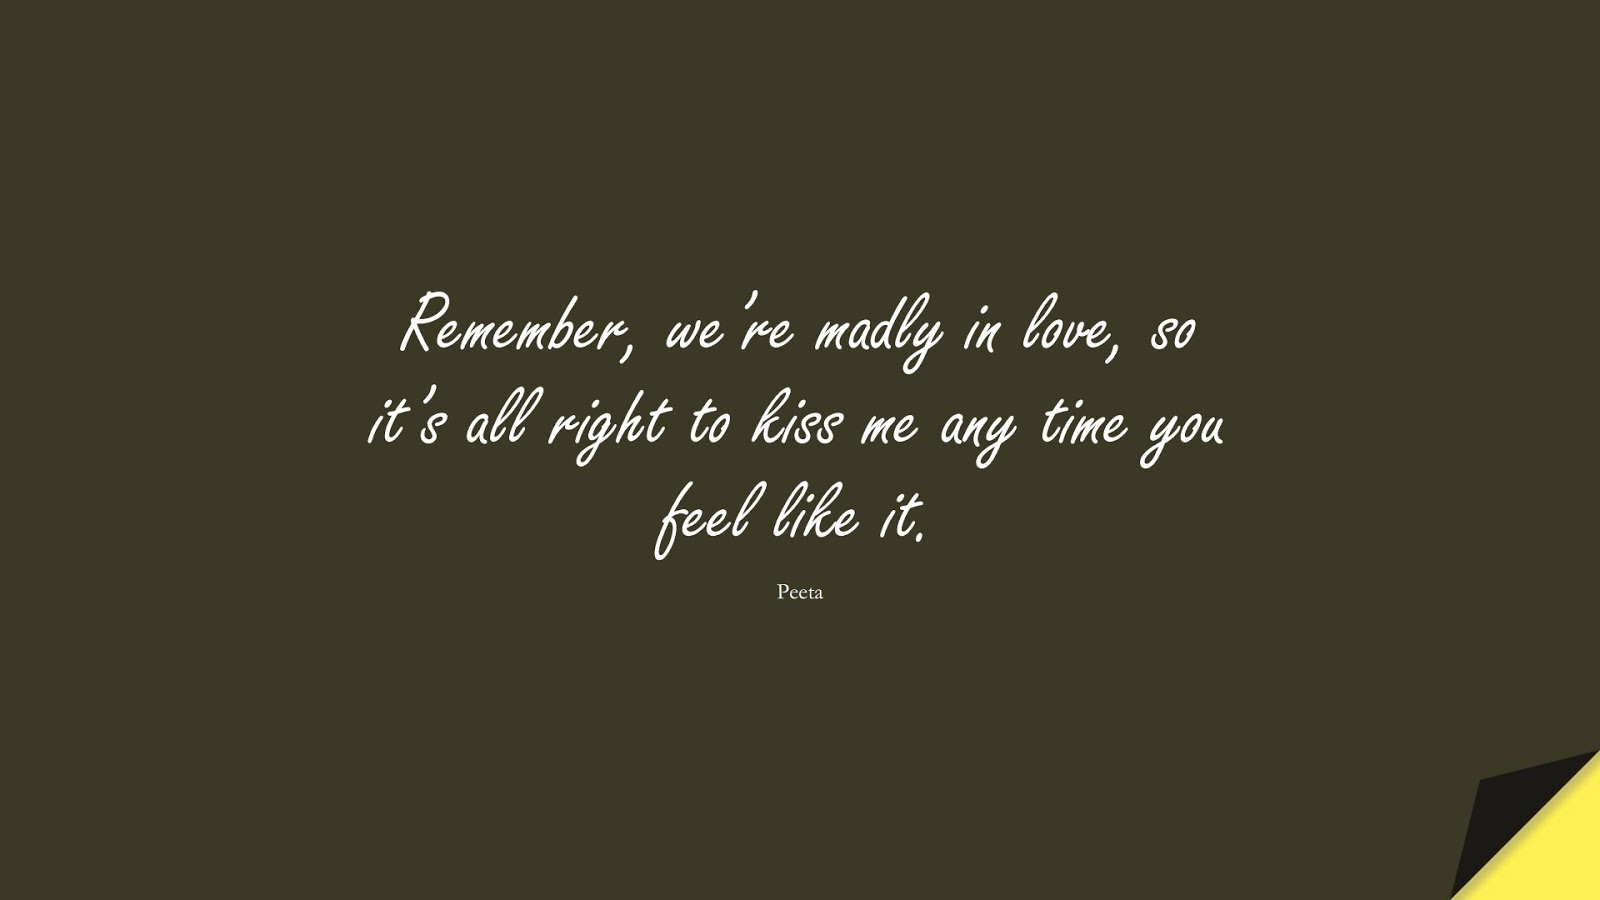 Remember, we're madly in love, so it's all right to kiss me any time you feel like it. (Peeta);  #LoveQuotes